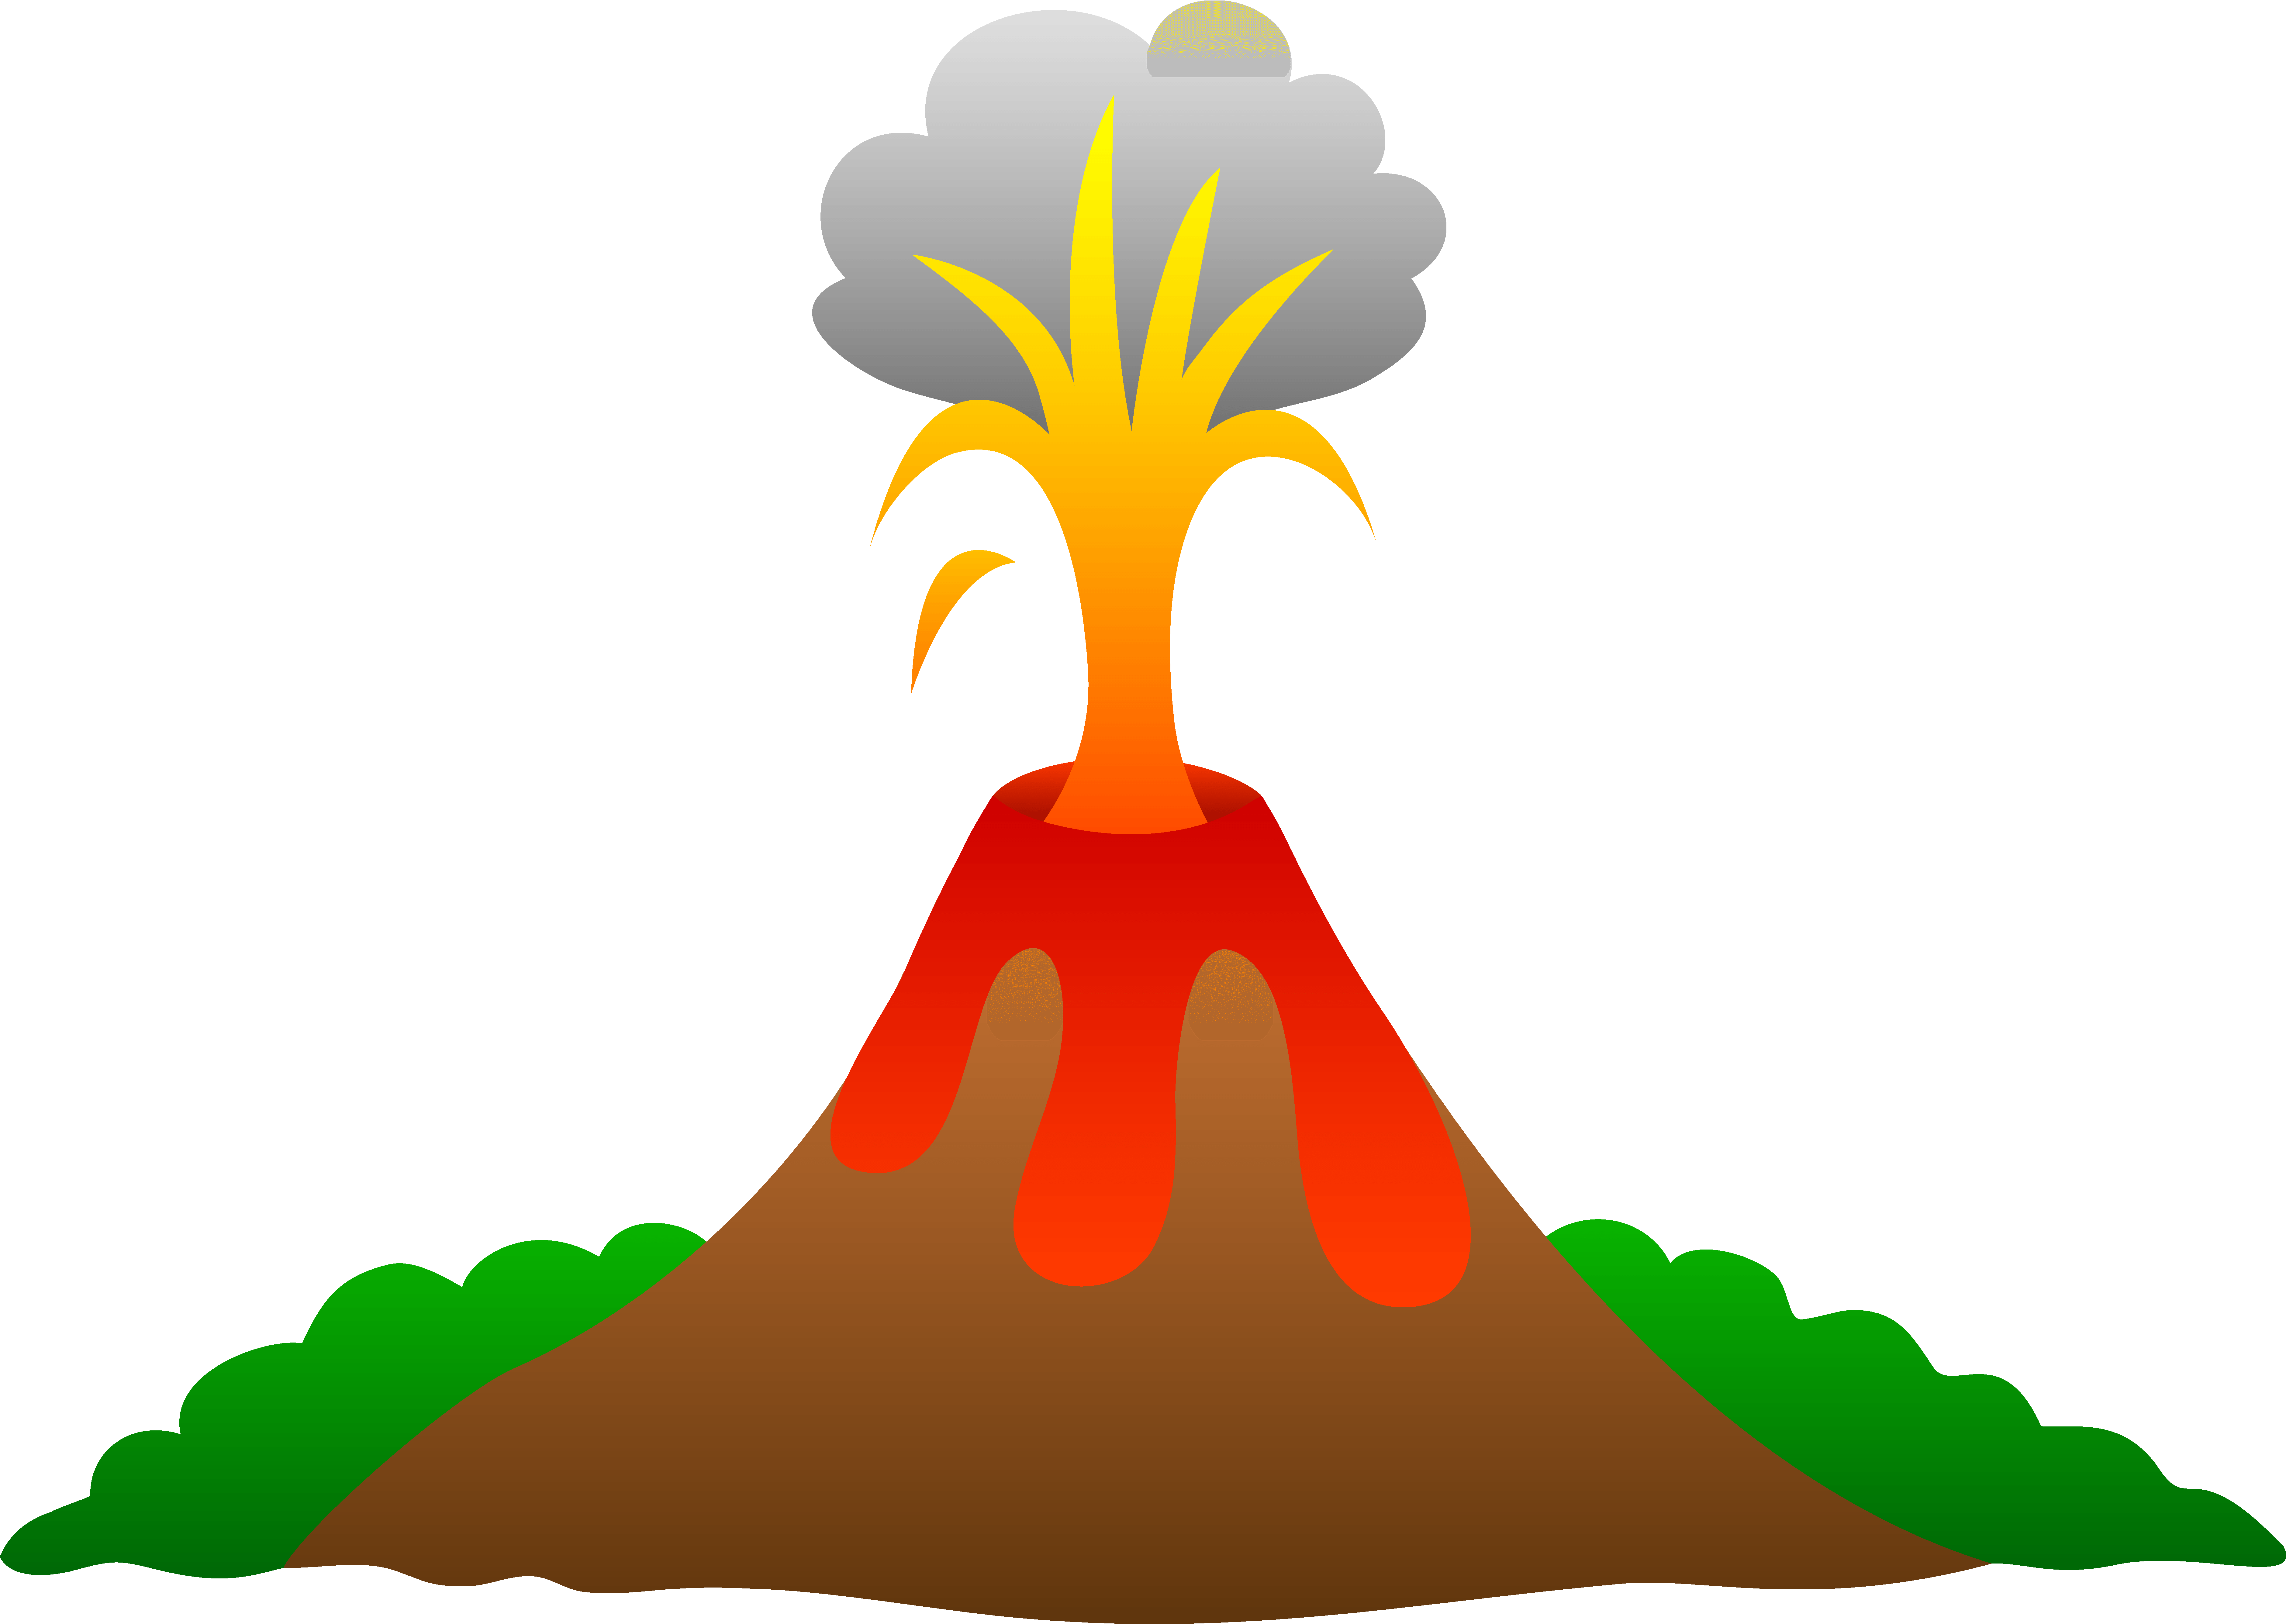 Clipart erupt picture freeuse library Erupt Cliparts - Cliparts Zone picture freeuse library